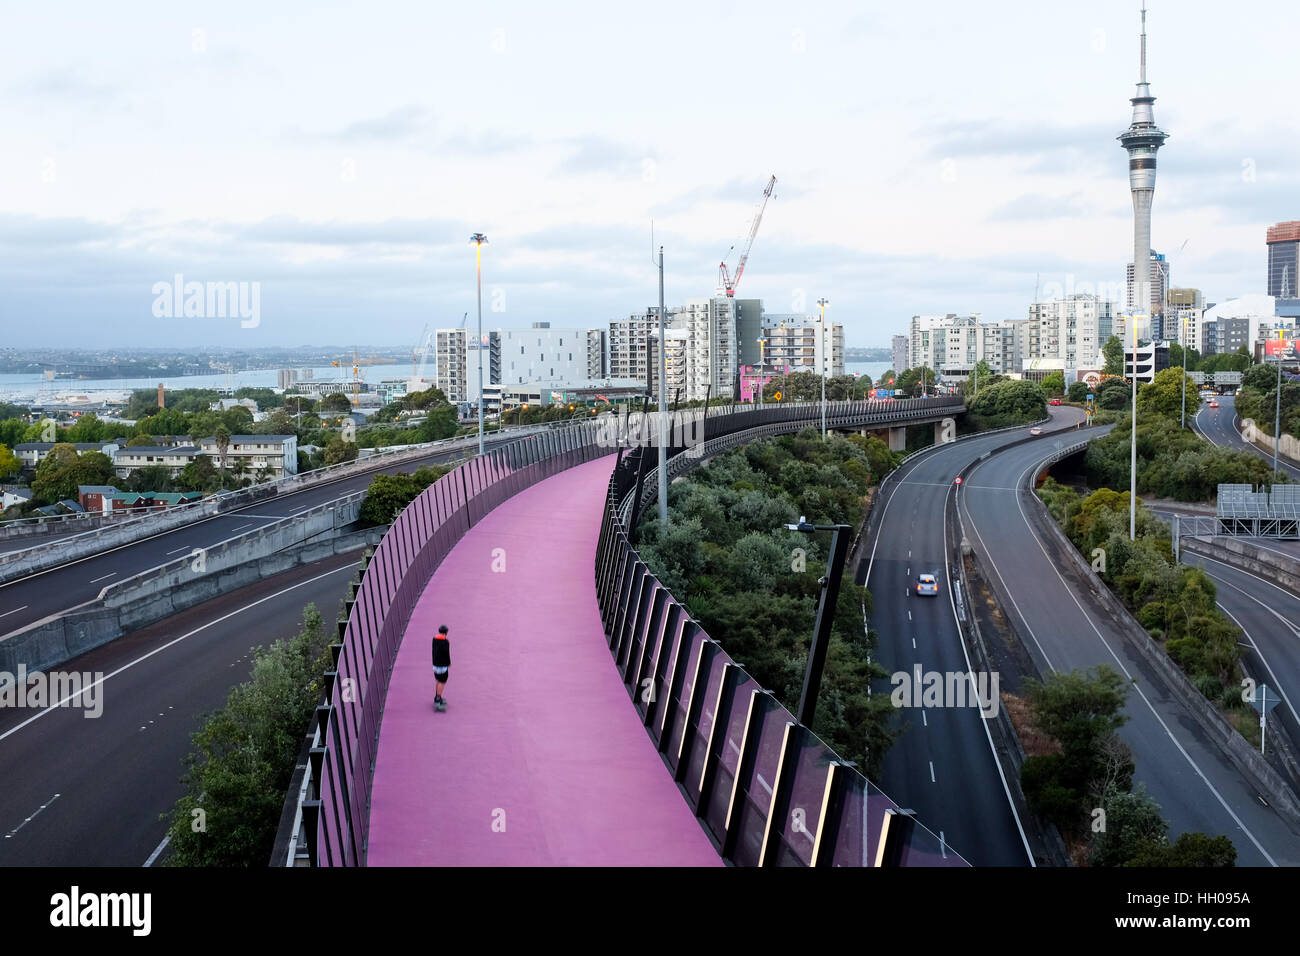 The Nelson Street Cycleway linking the Upper Queen Street bridge and Quay Street in Auckland, New Zealand. - Stock Image